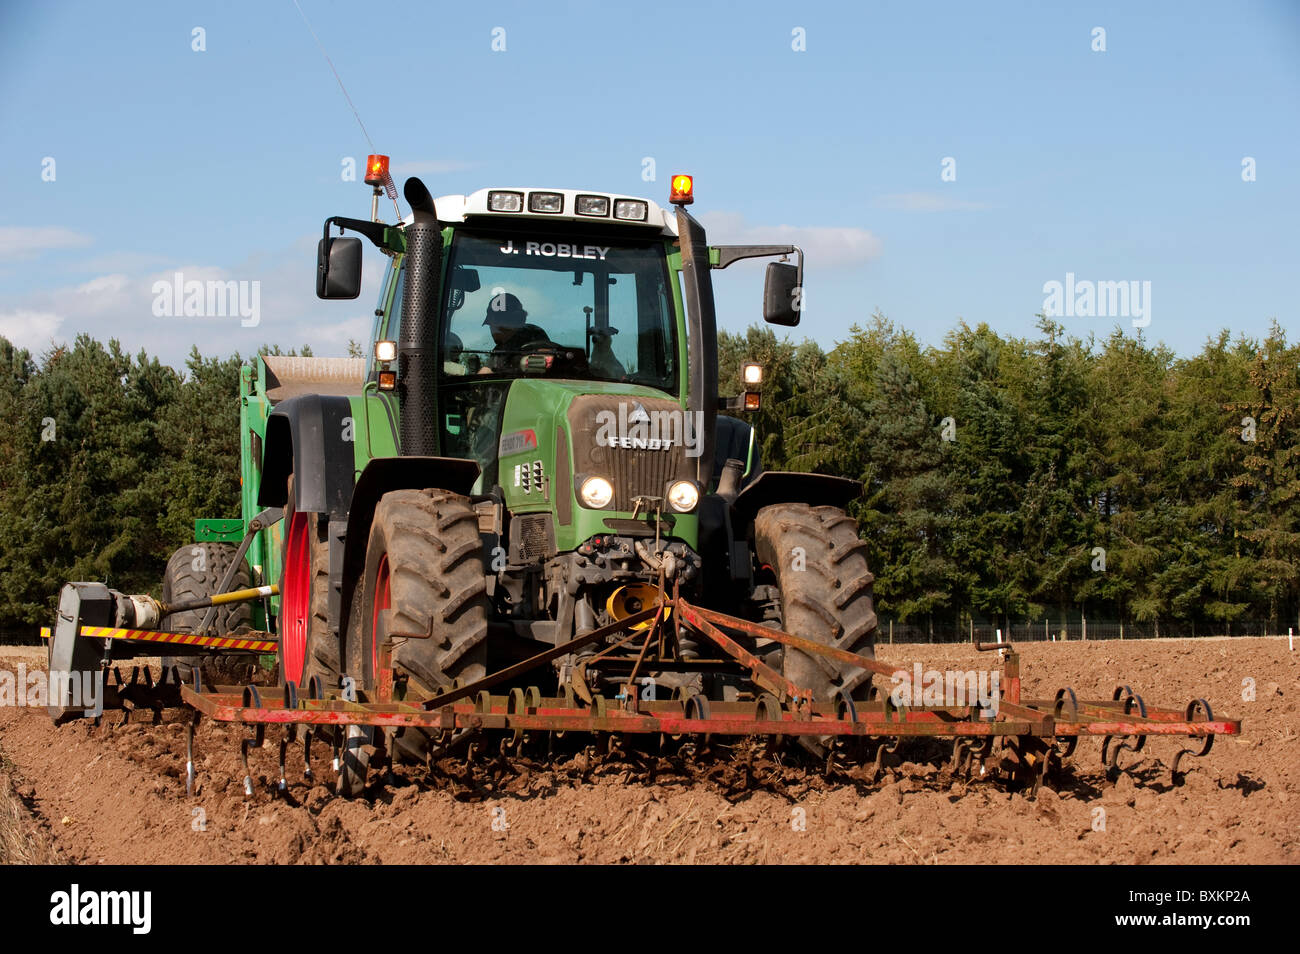 Fendt 716 tractor with stone picker going over newly ploughed field. - Stock Image